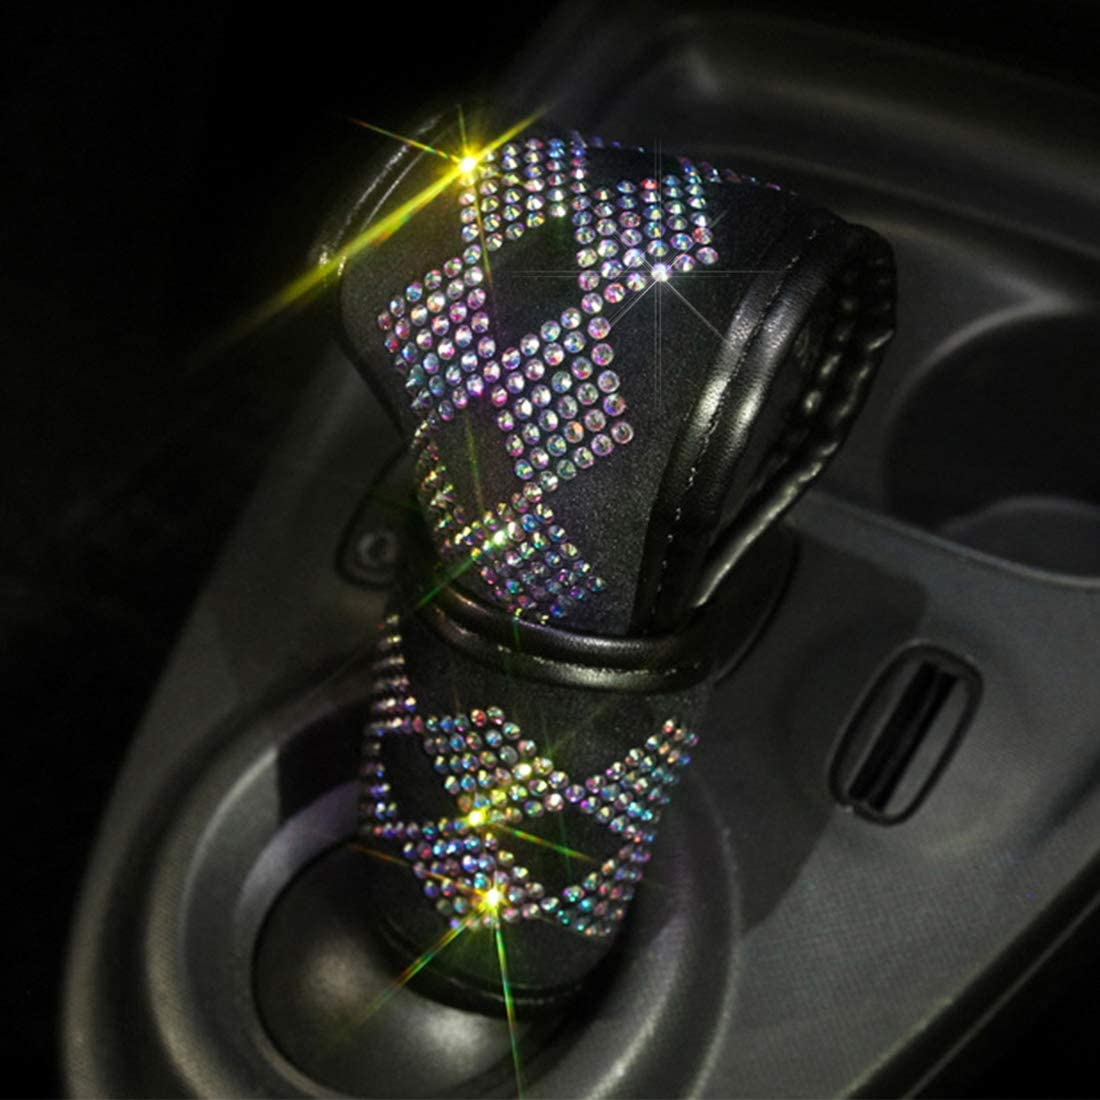 Bling Bling Auto Shift Gear Cover, Luster Crystal Car Knob Gear Stick Protector Diamond Car Decor Accessories for Women(PDT-LX)